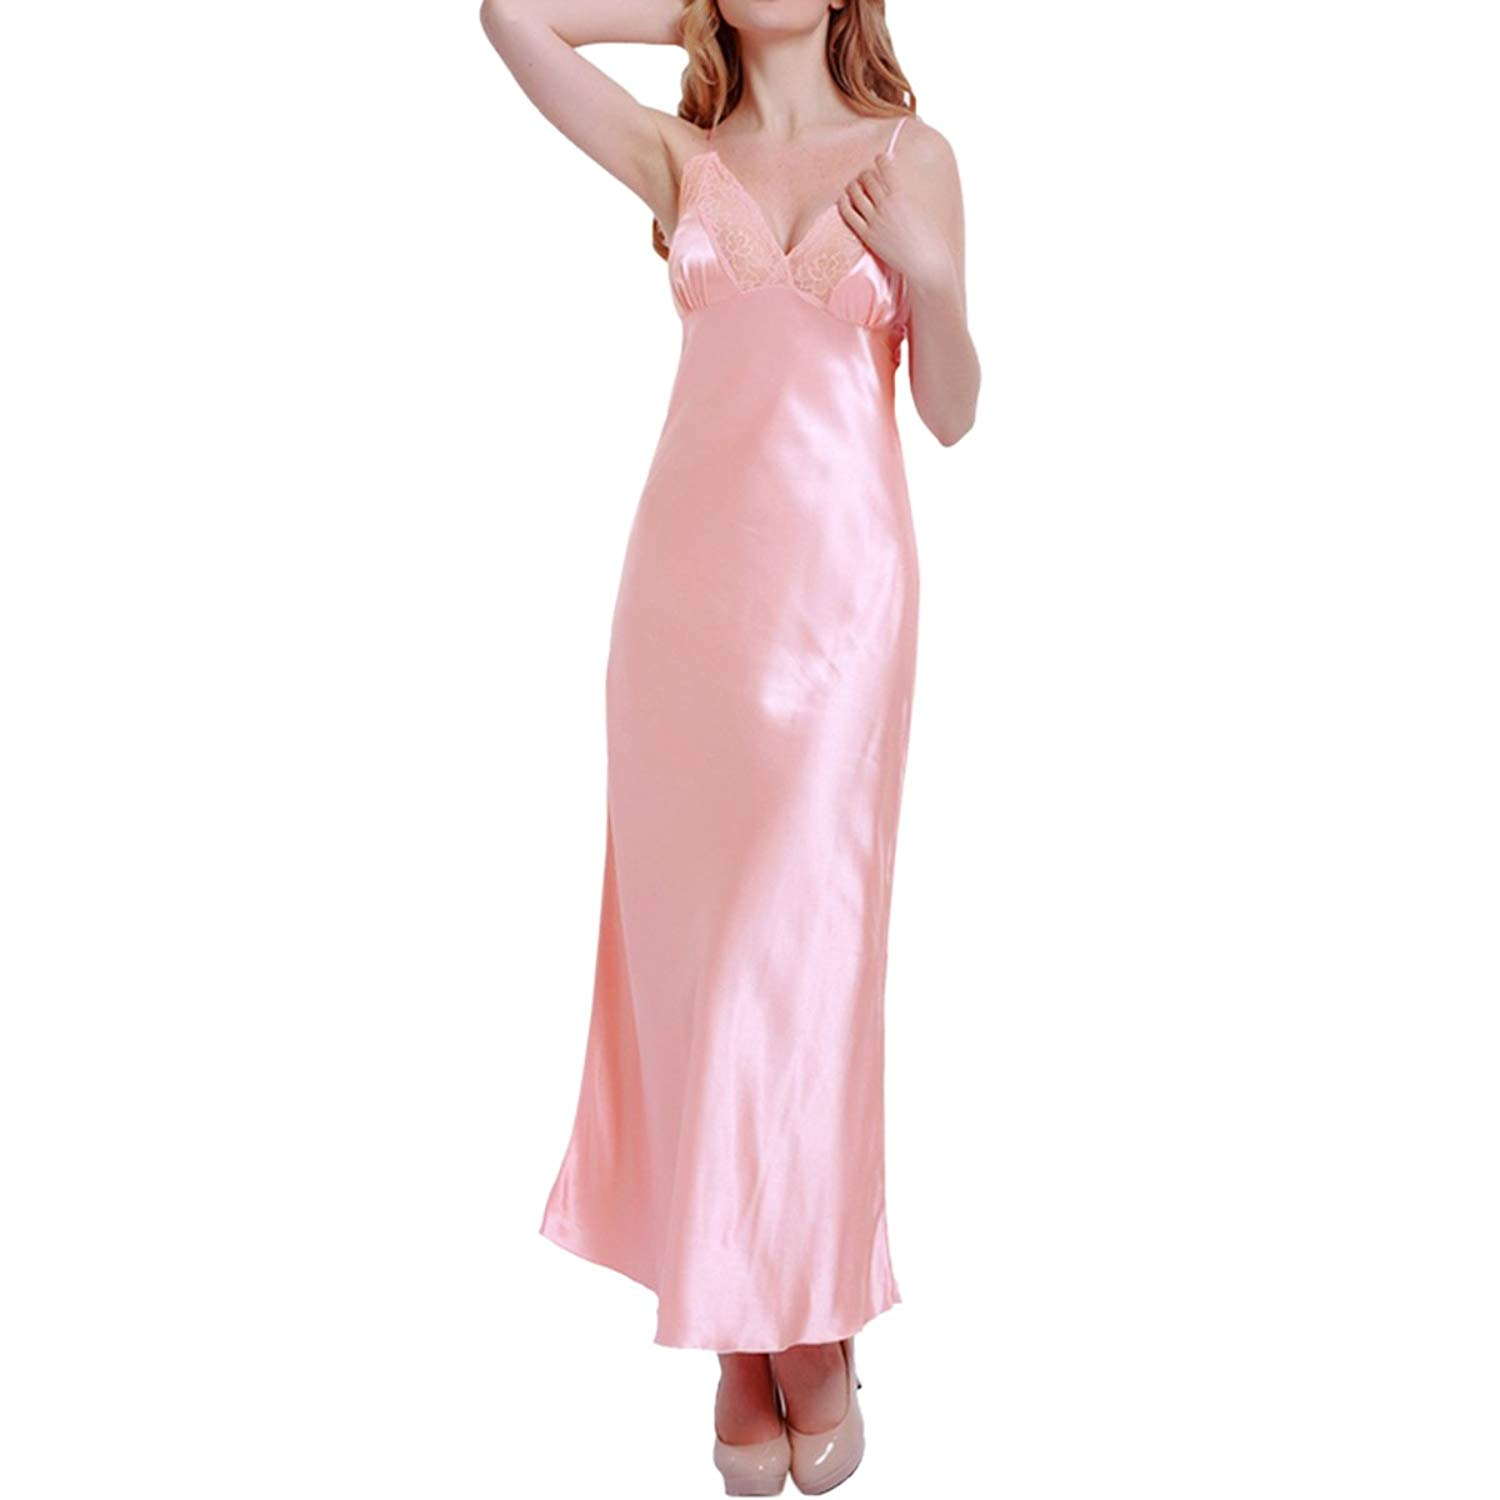 Cheap Satin Nightgowns For Girls, find Satin Nightgowns For Girls ...